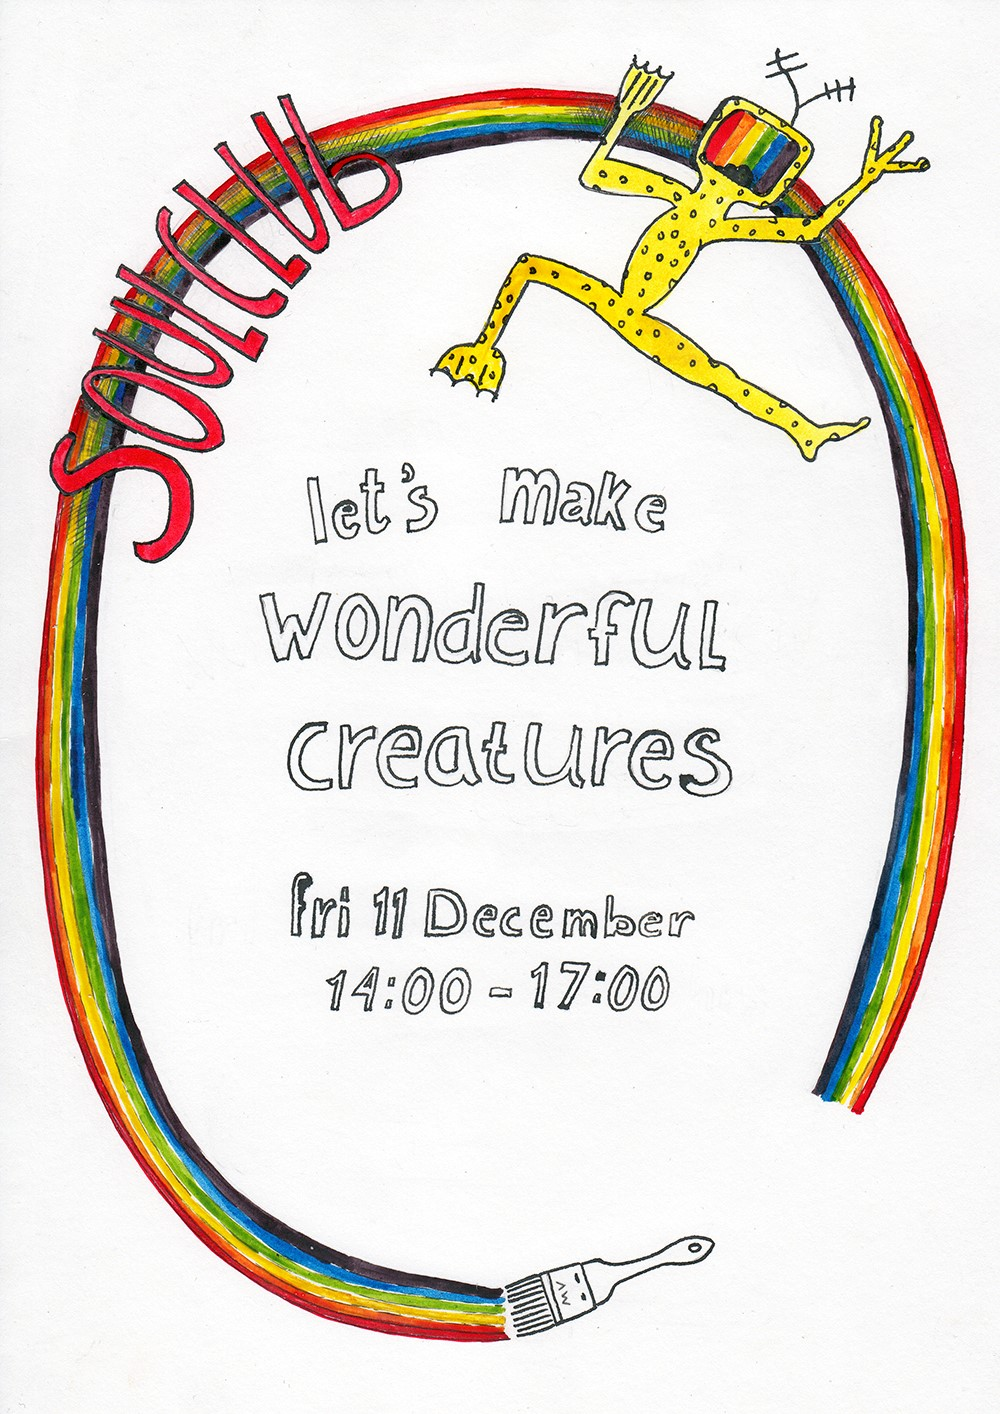 poster-workshop-by-Marielle-for-Rainbowsoulclub